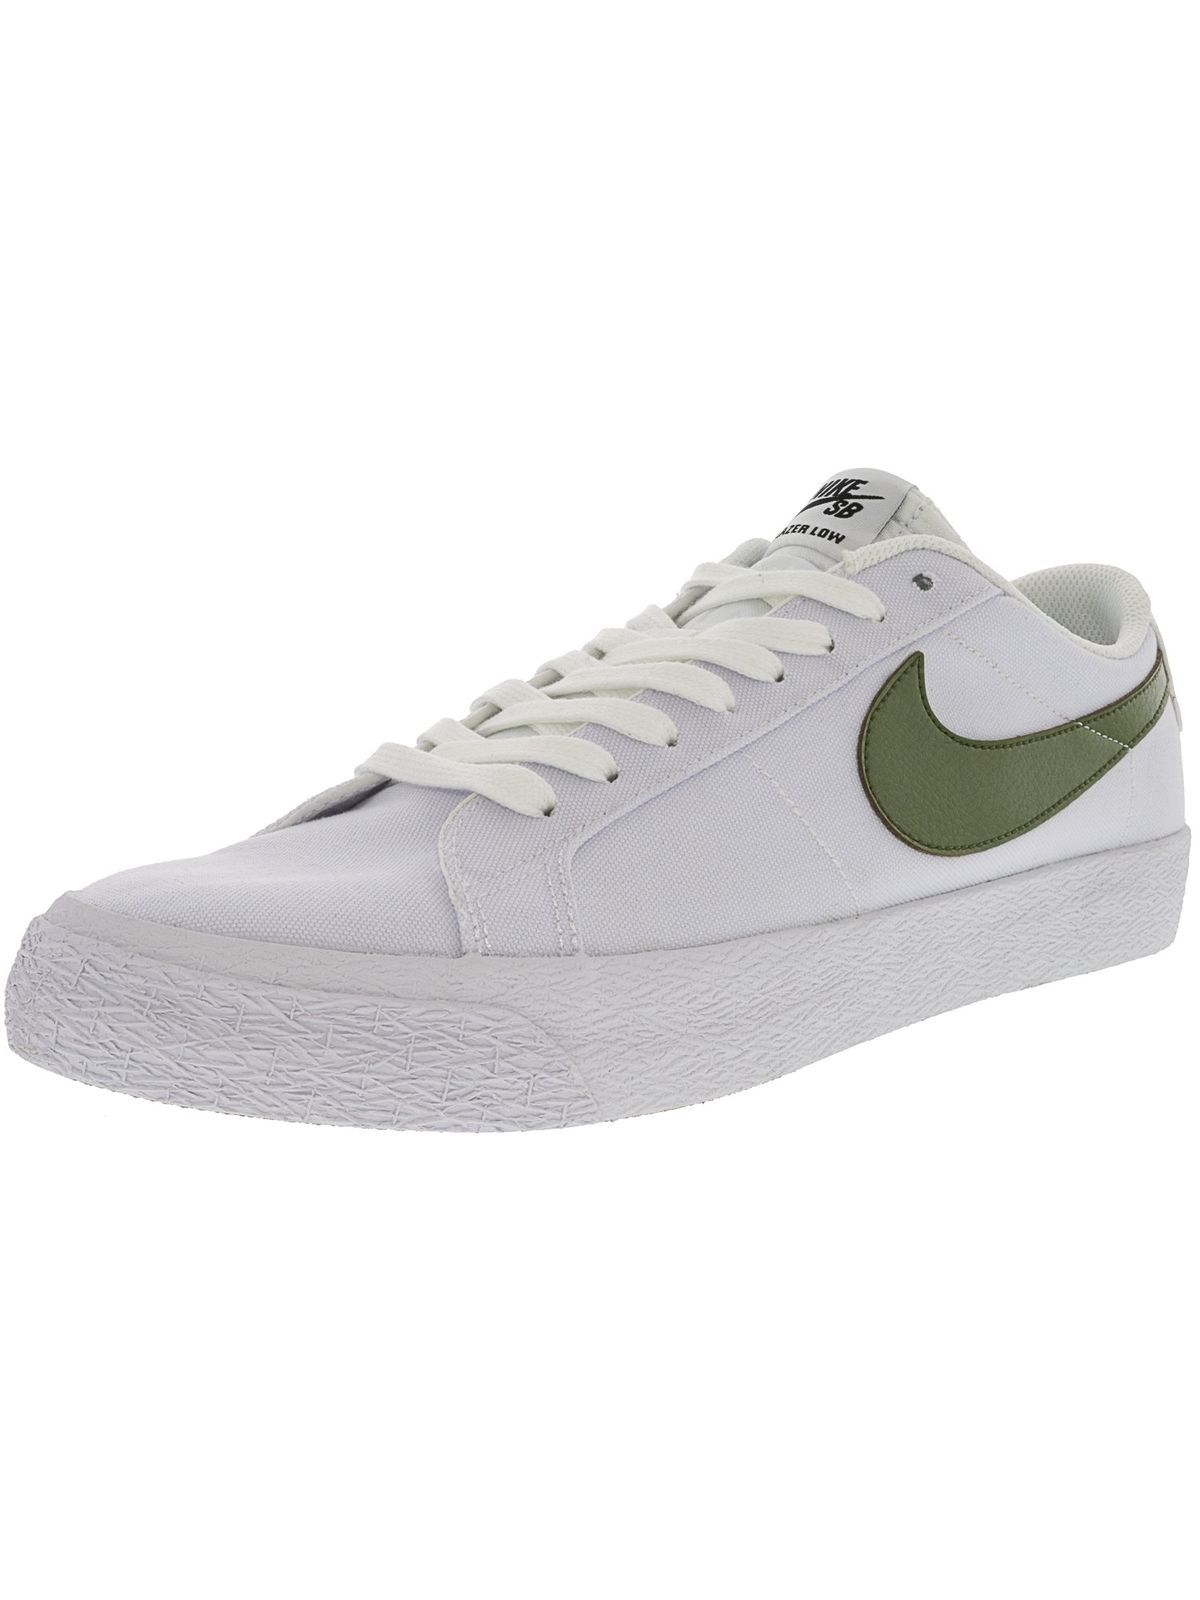 save off 43944 5ec7f Hit the skate park in a fresh new pair of Sb Blazer Zoom Low shoes by Nike.  The durable canvas and rubber soles make this the perfect skateboarding shoe .